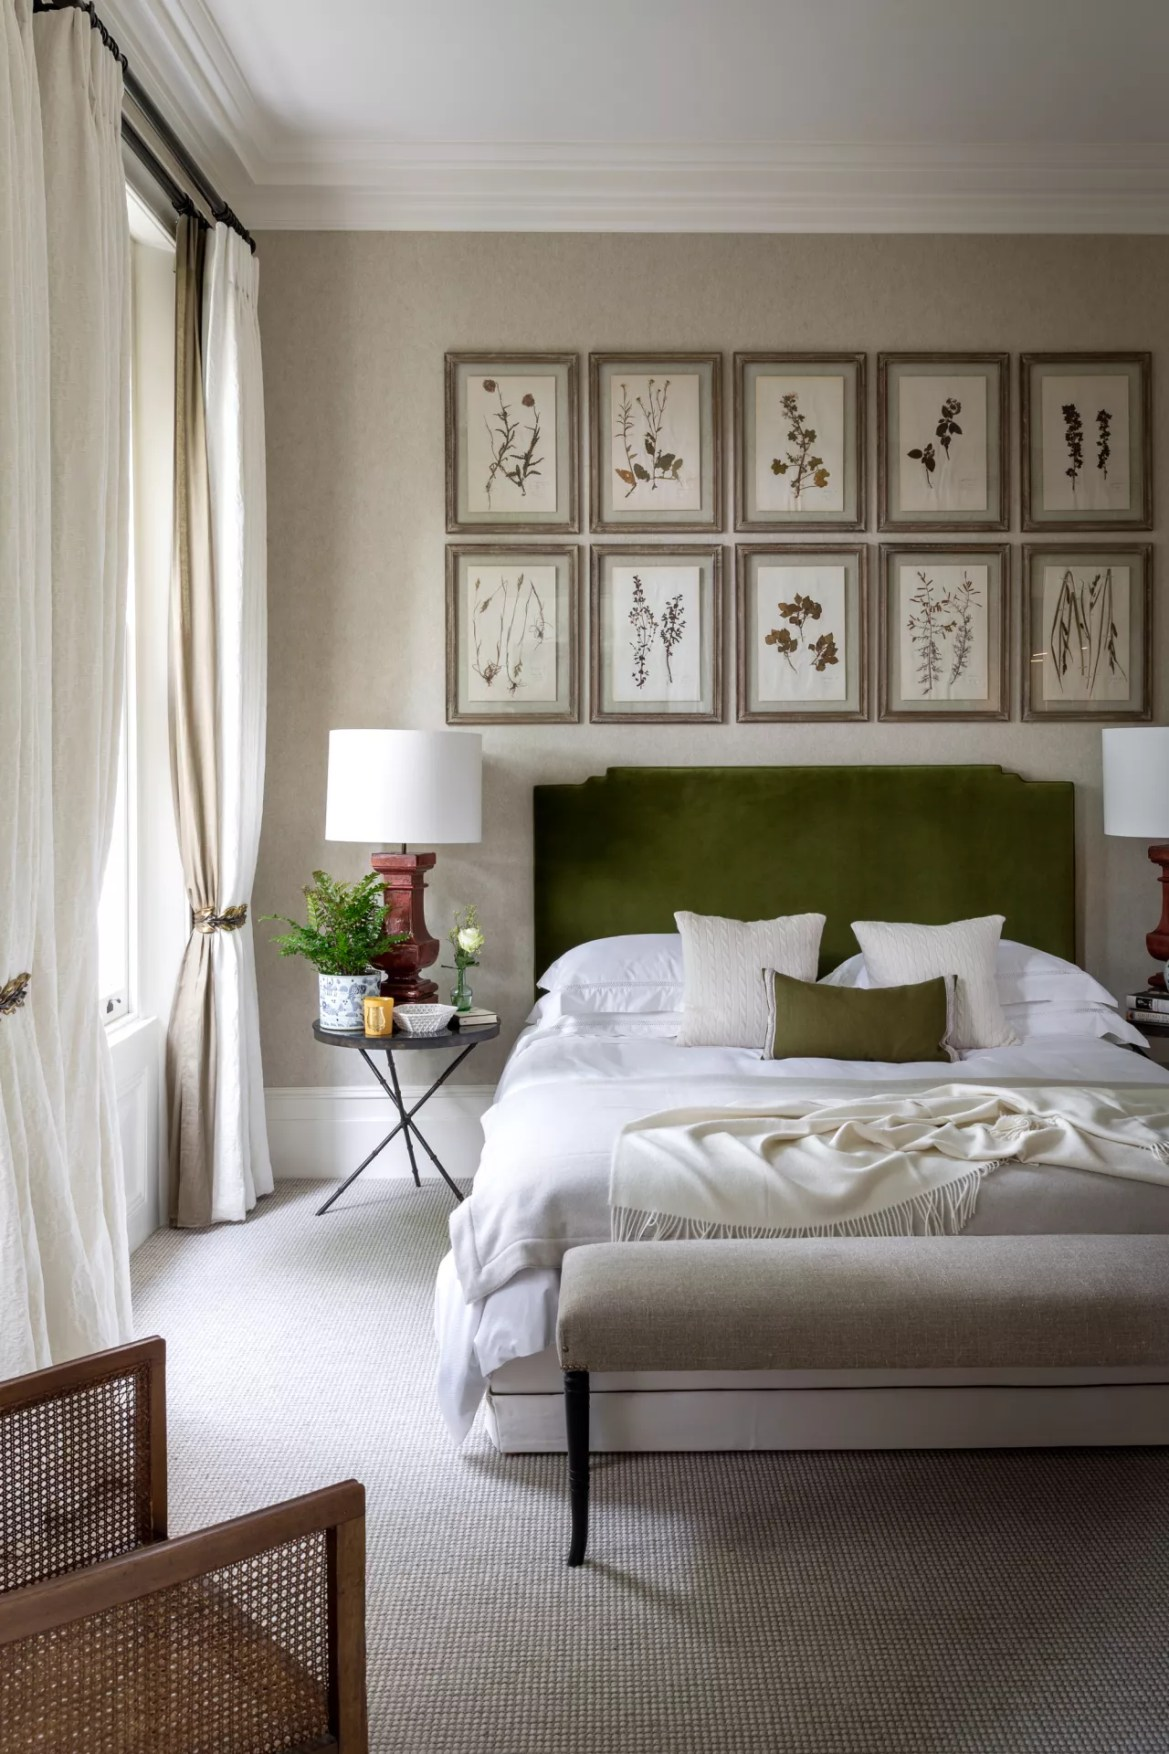 botanical art prints above bed in bedroom by Kitesgrove